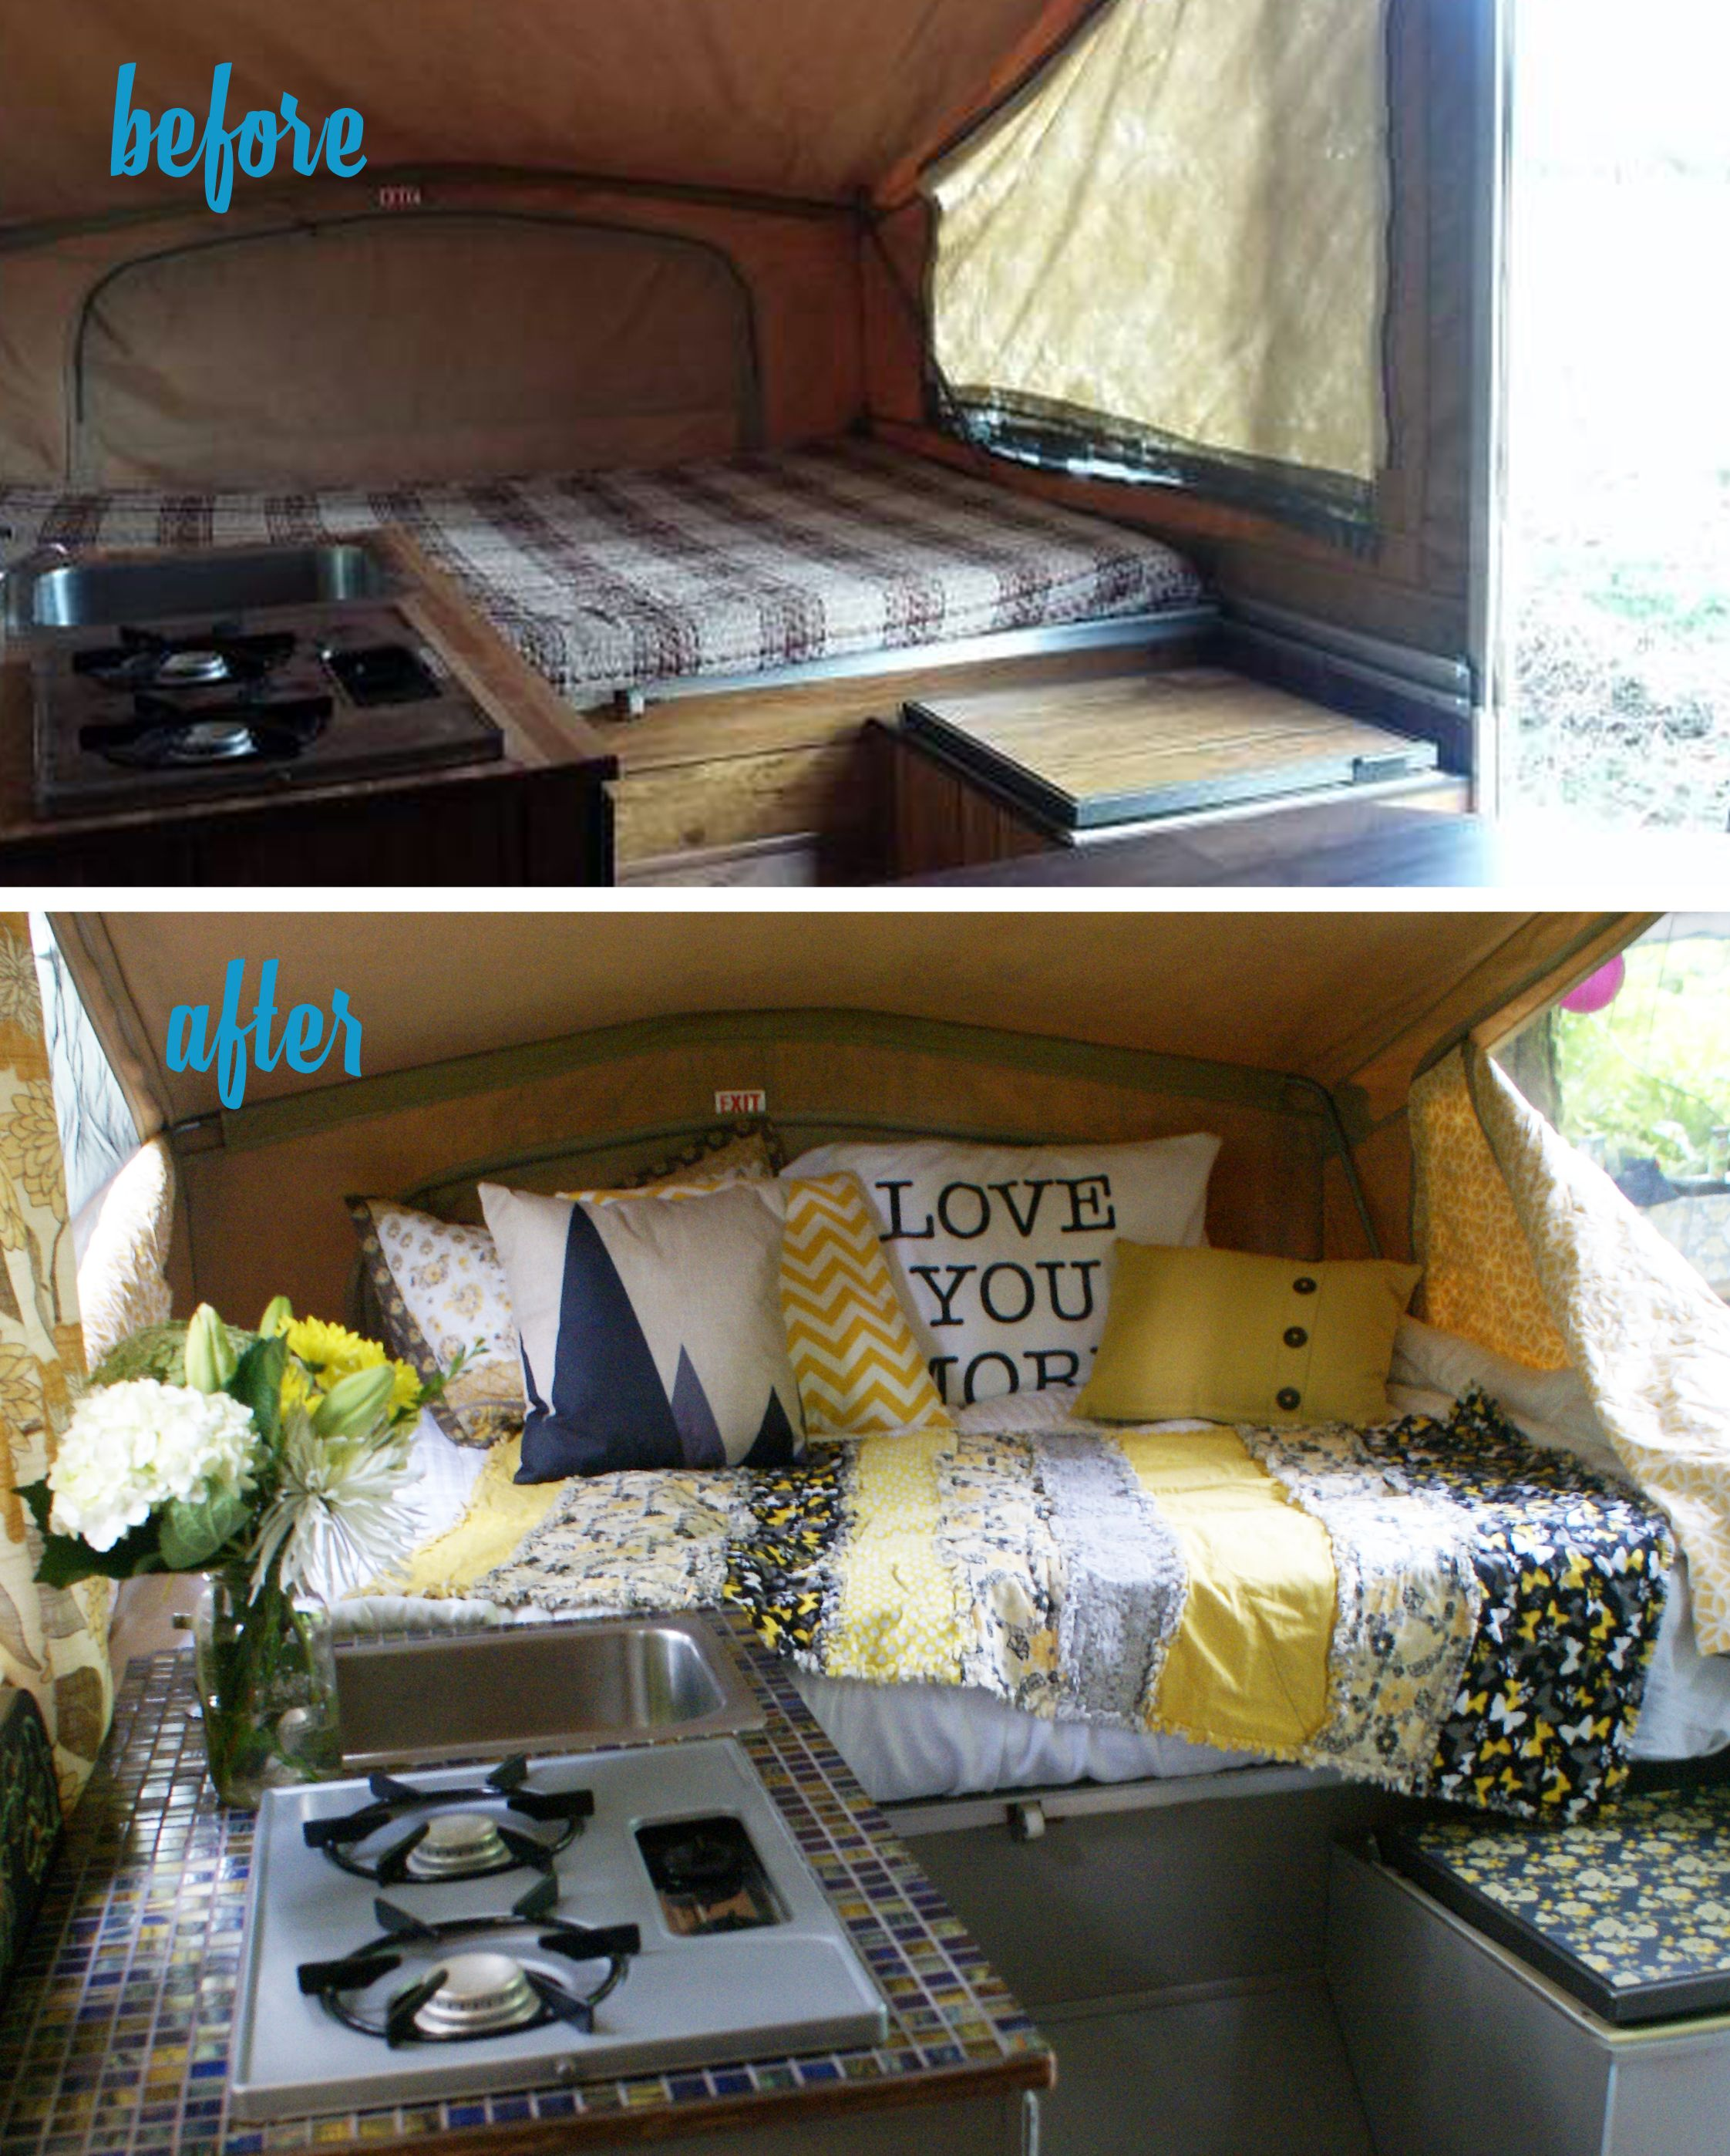 1986 Palomino Pop Up Tent Trailer Before And After Redo In